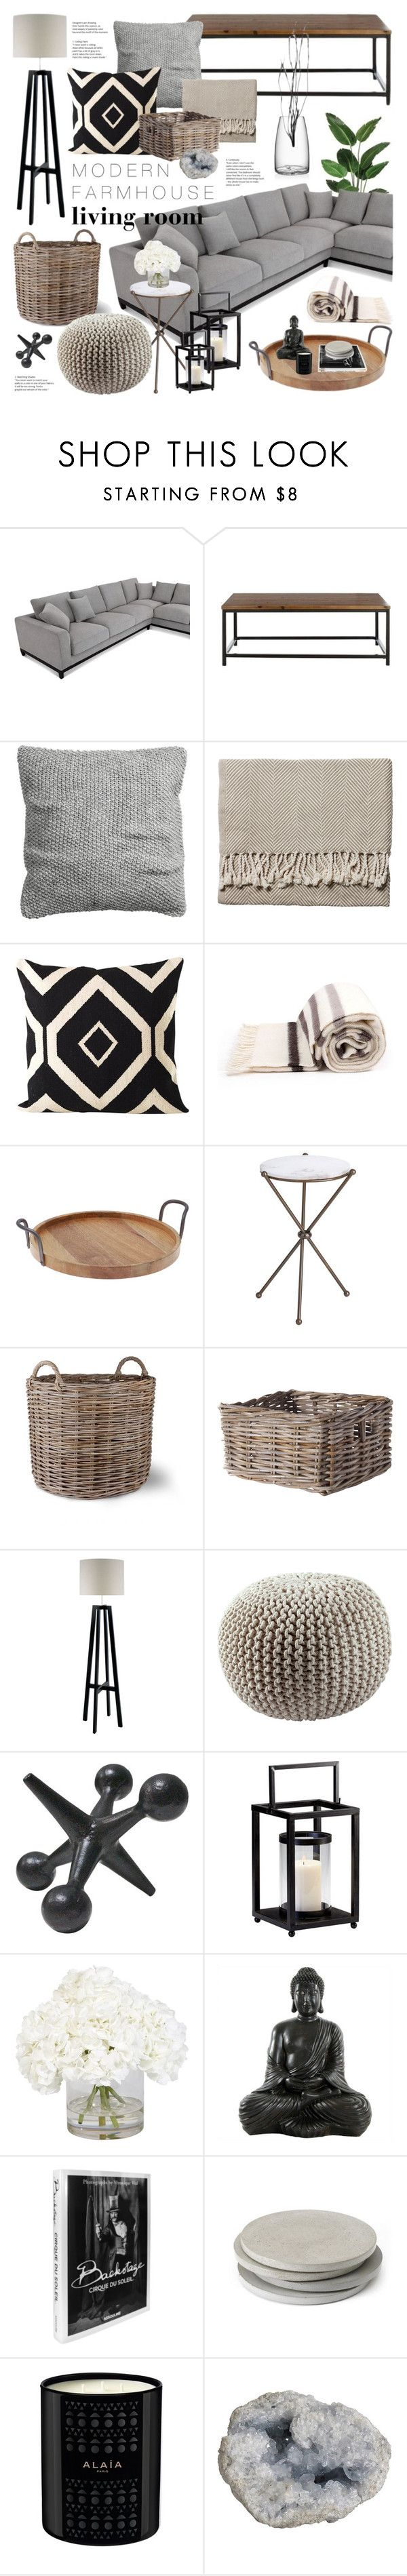 """""""Modern Farmhouse Living Room"""" by emmy ❤ liked on Polyvore featuring interior, interiors, interior design, home, home decor, interior decorating, H&M, Serena & Lily, Hudson's Bay Company and Thirstystone"""